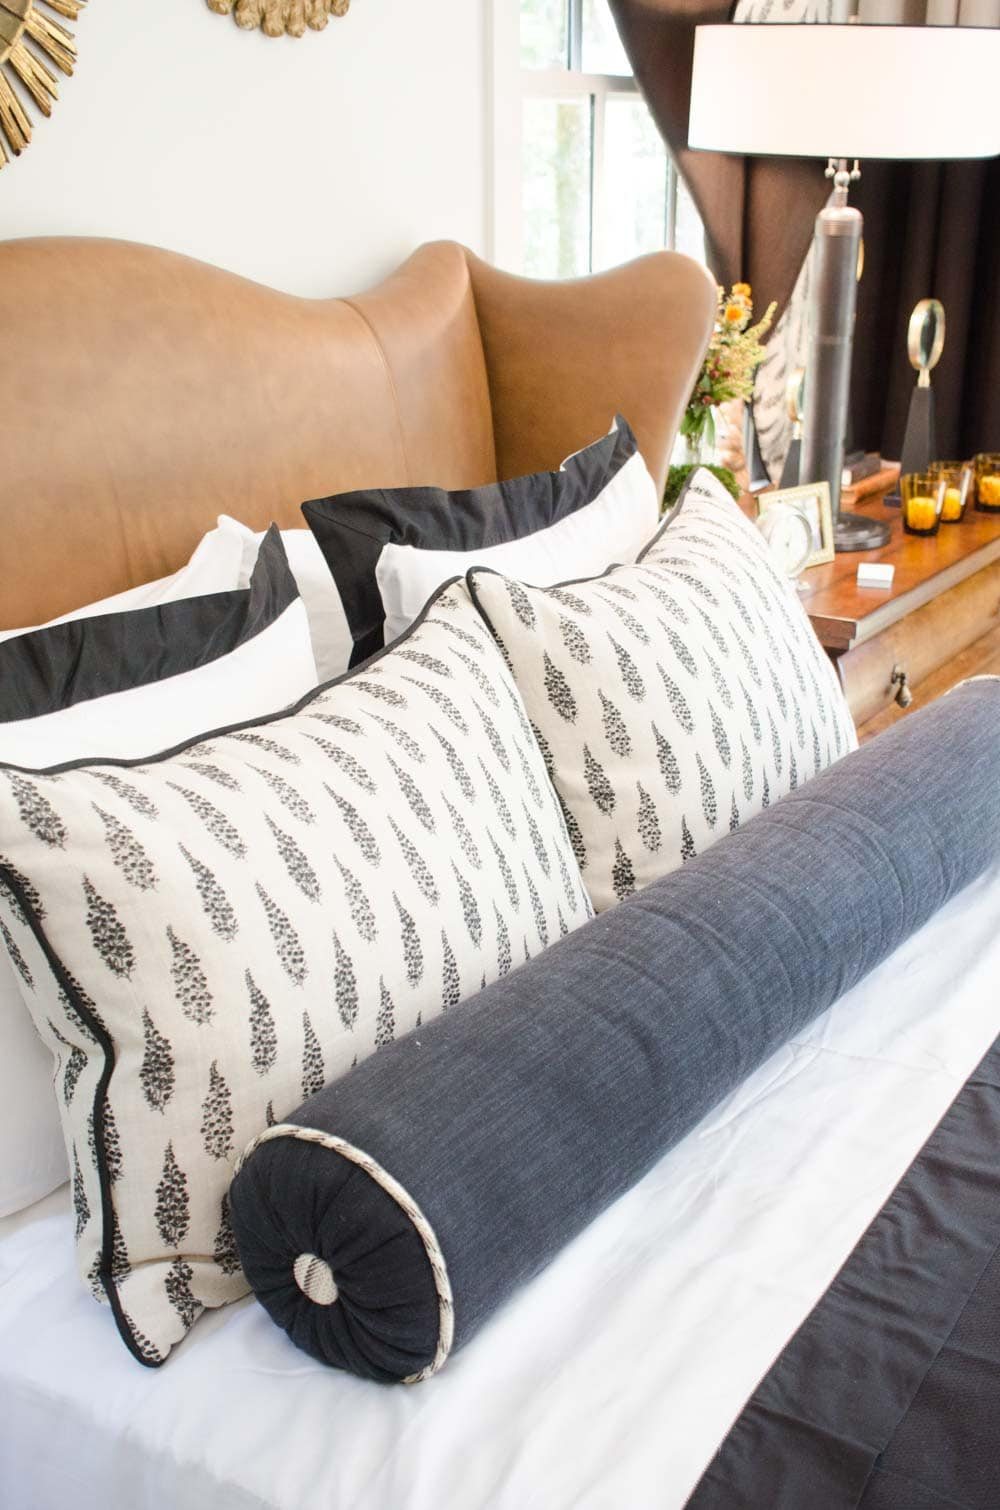 Handsome bed with leather headboard and charcoal lumbar pillow